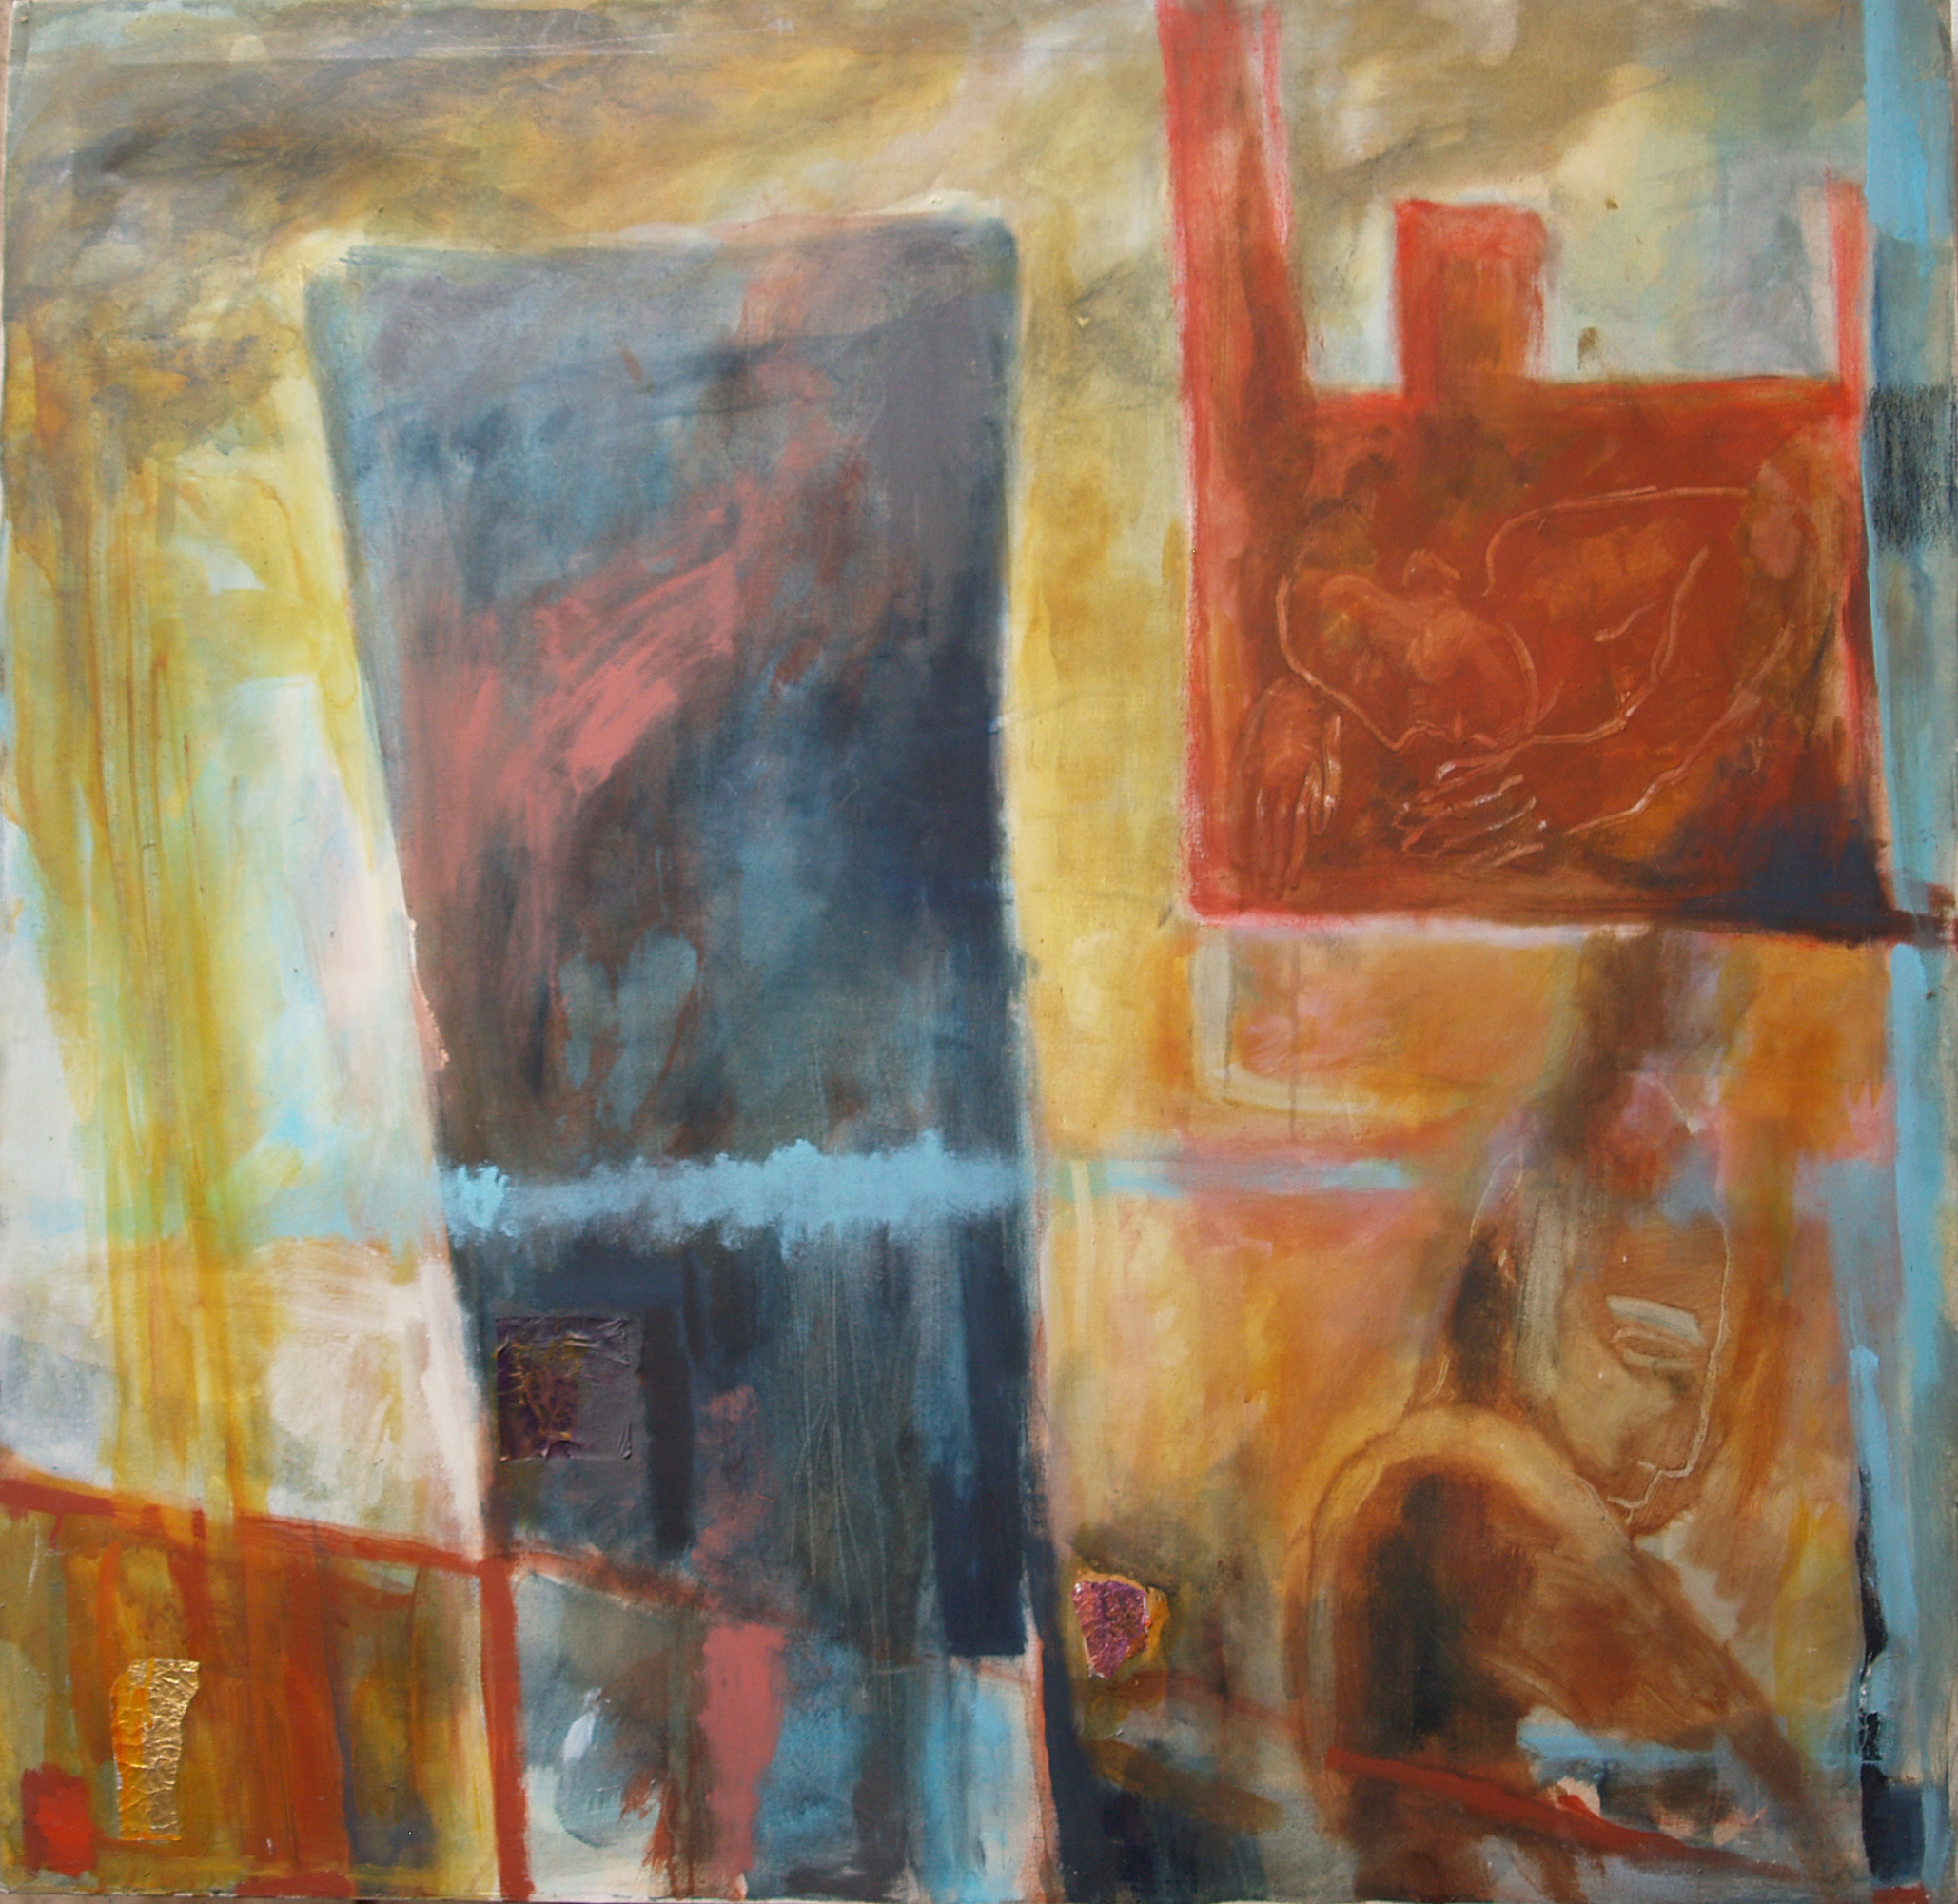 Pensive in a Dangerous Landscape - 1986 - Acrylic, Mixed Media on Canvas - 122 X122